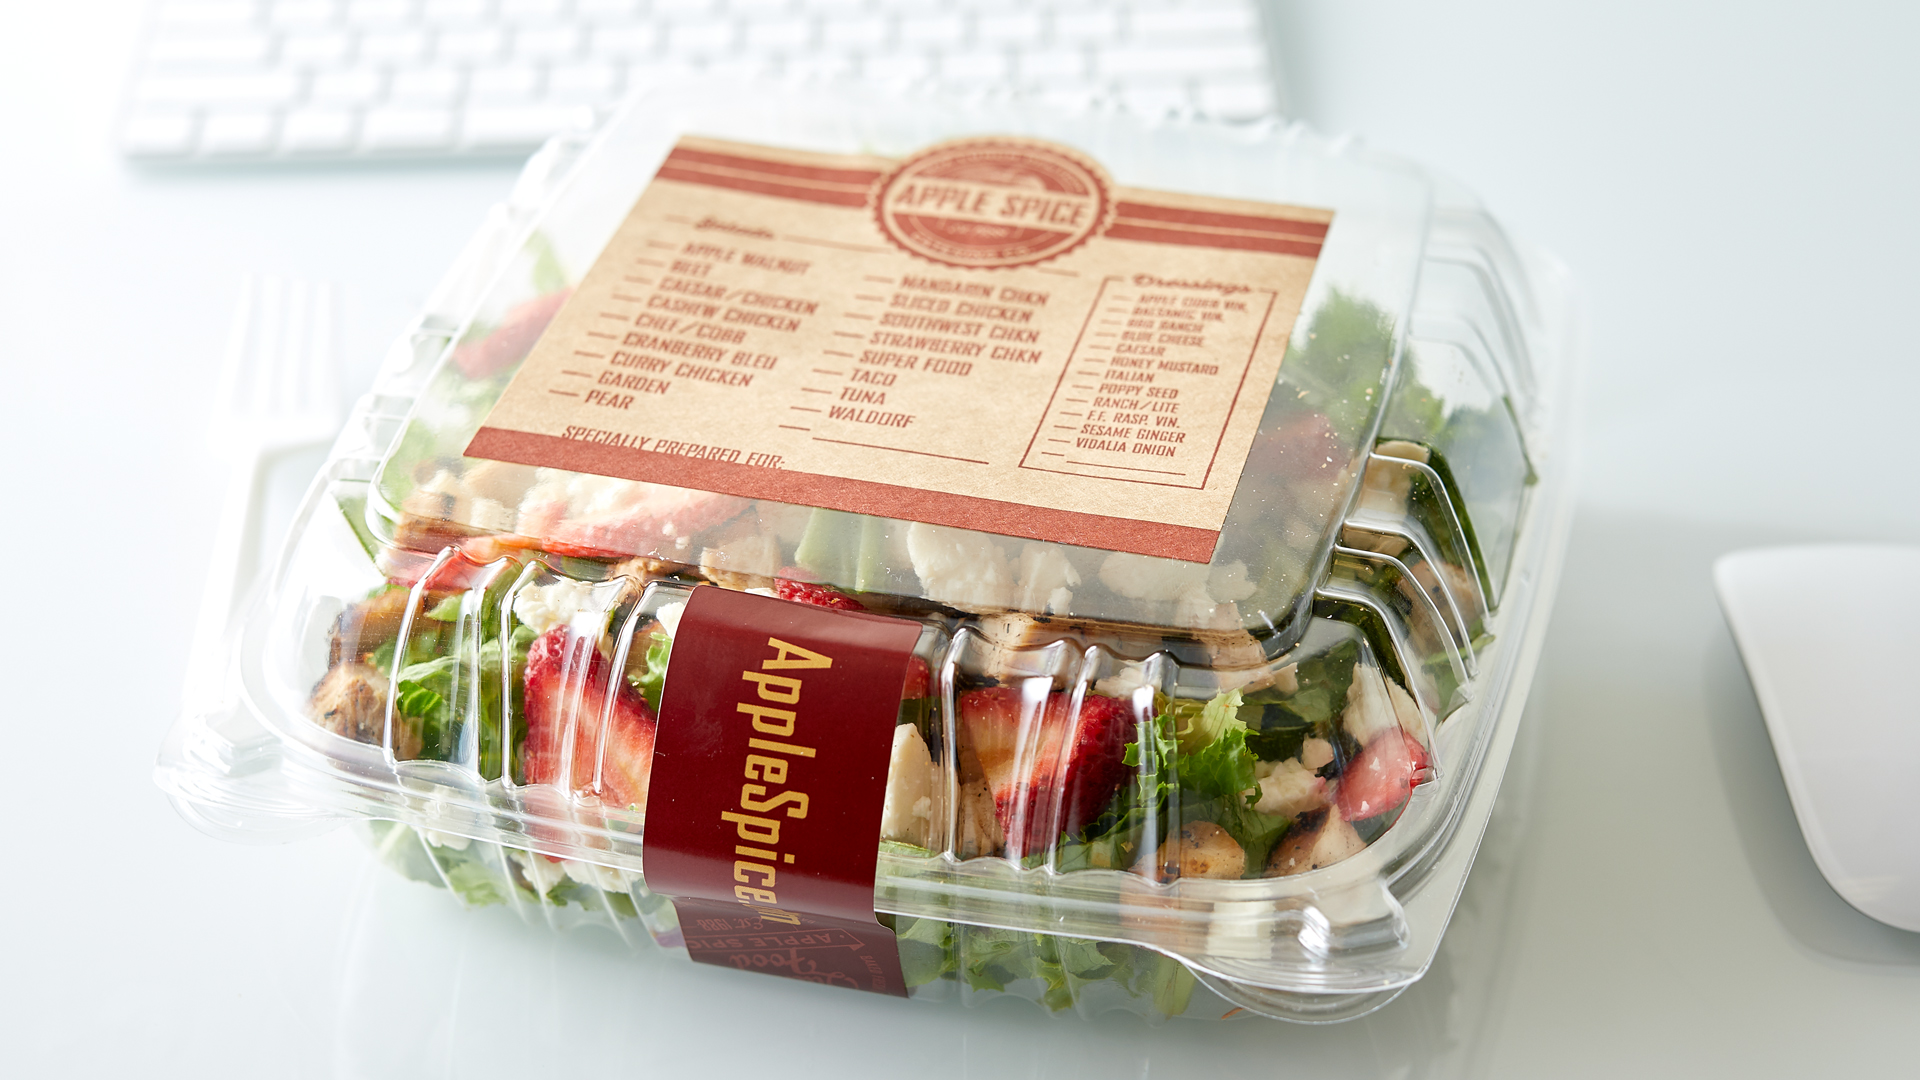 Apple Spice Individually Packaged Salad for Catered Office Events